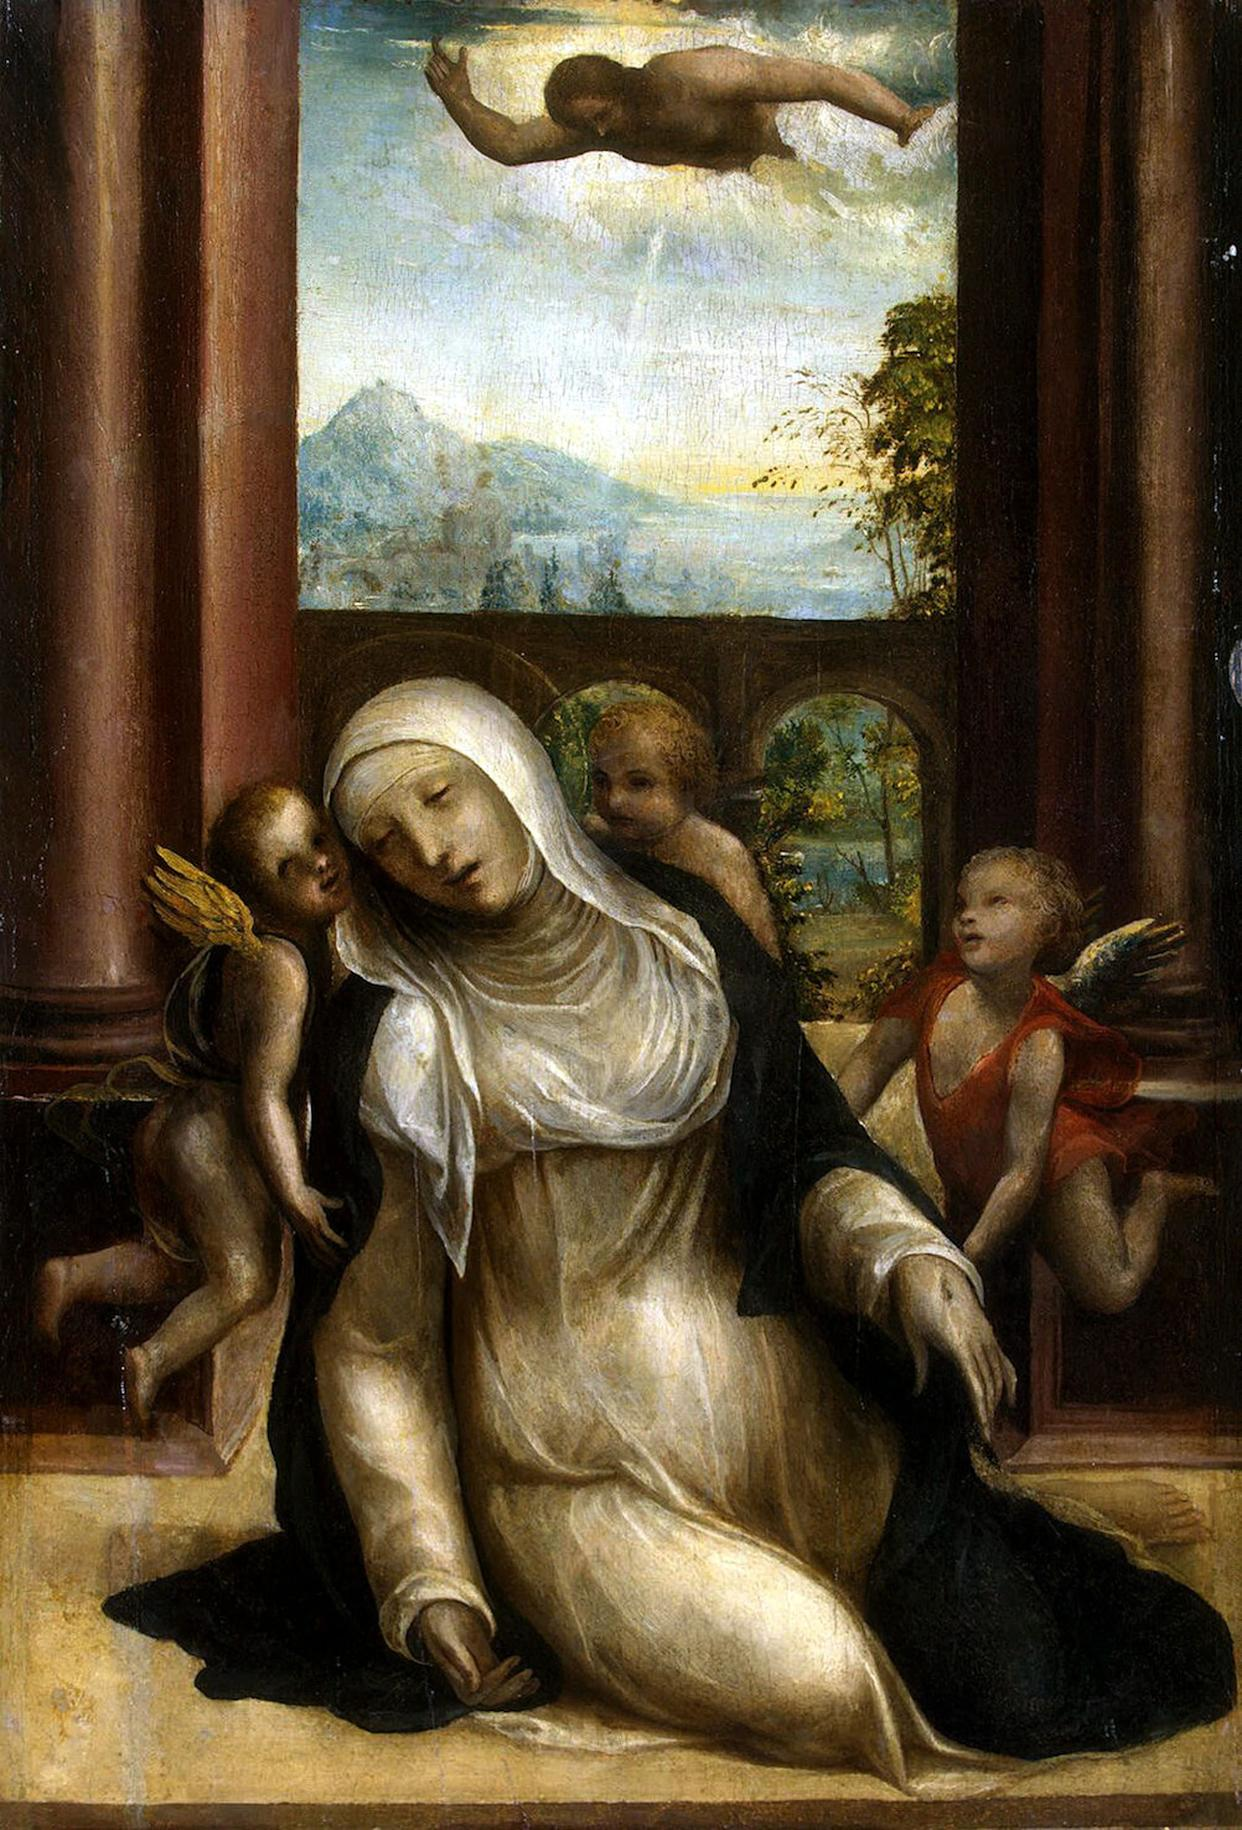 The second-youngest of 25 children, <span>Catherine of Siena</span>&amp;nbsp;is one of only two patron saints of Italy. Catherine believed herself to be spiritually wed to Jesus and committed herself to a monastic life as a teenager. She was a <span>peacemaker</span>&amp;nbsp;during the 1368 revolution in Siena and convinced Pope Gregory XI to return the papacy to Rome during a tumultuous time for the Catholic Church. One story from her life tells of Jesus appearing to her with a heart in his hands and saying, &amp;ldquo;Dearest daughter, as I took your heart away from you the other day, now, you see, I am giving you mine, so that you can go on living with it for ever.&amp;rdquo; She was canonized in 1461.